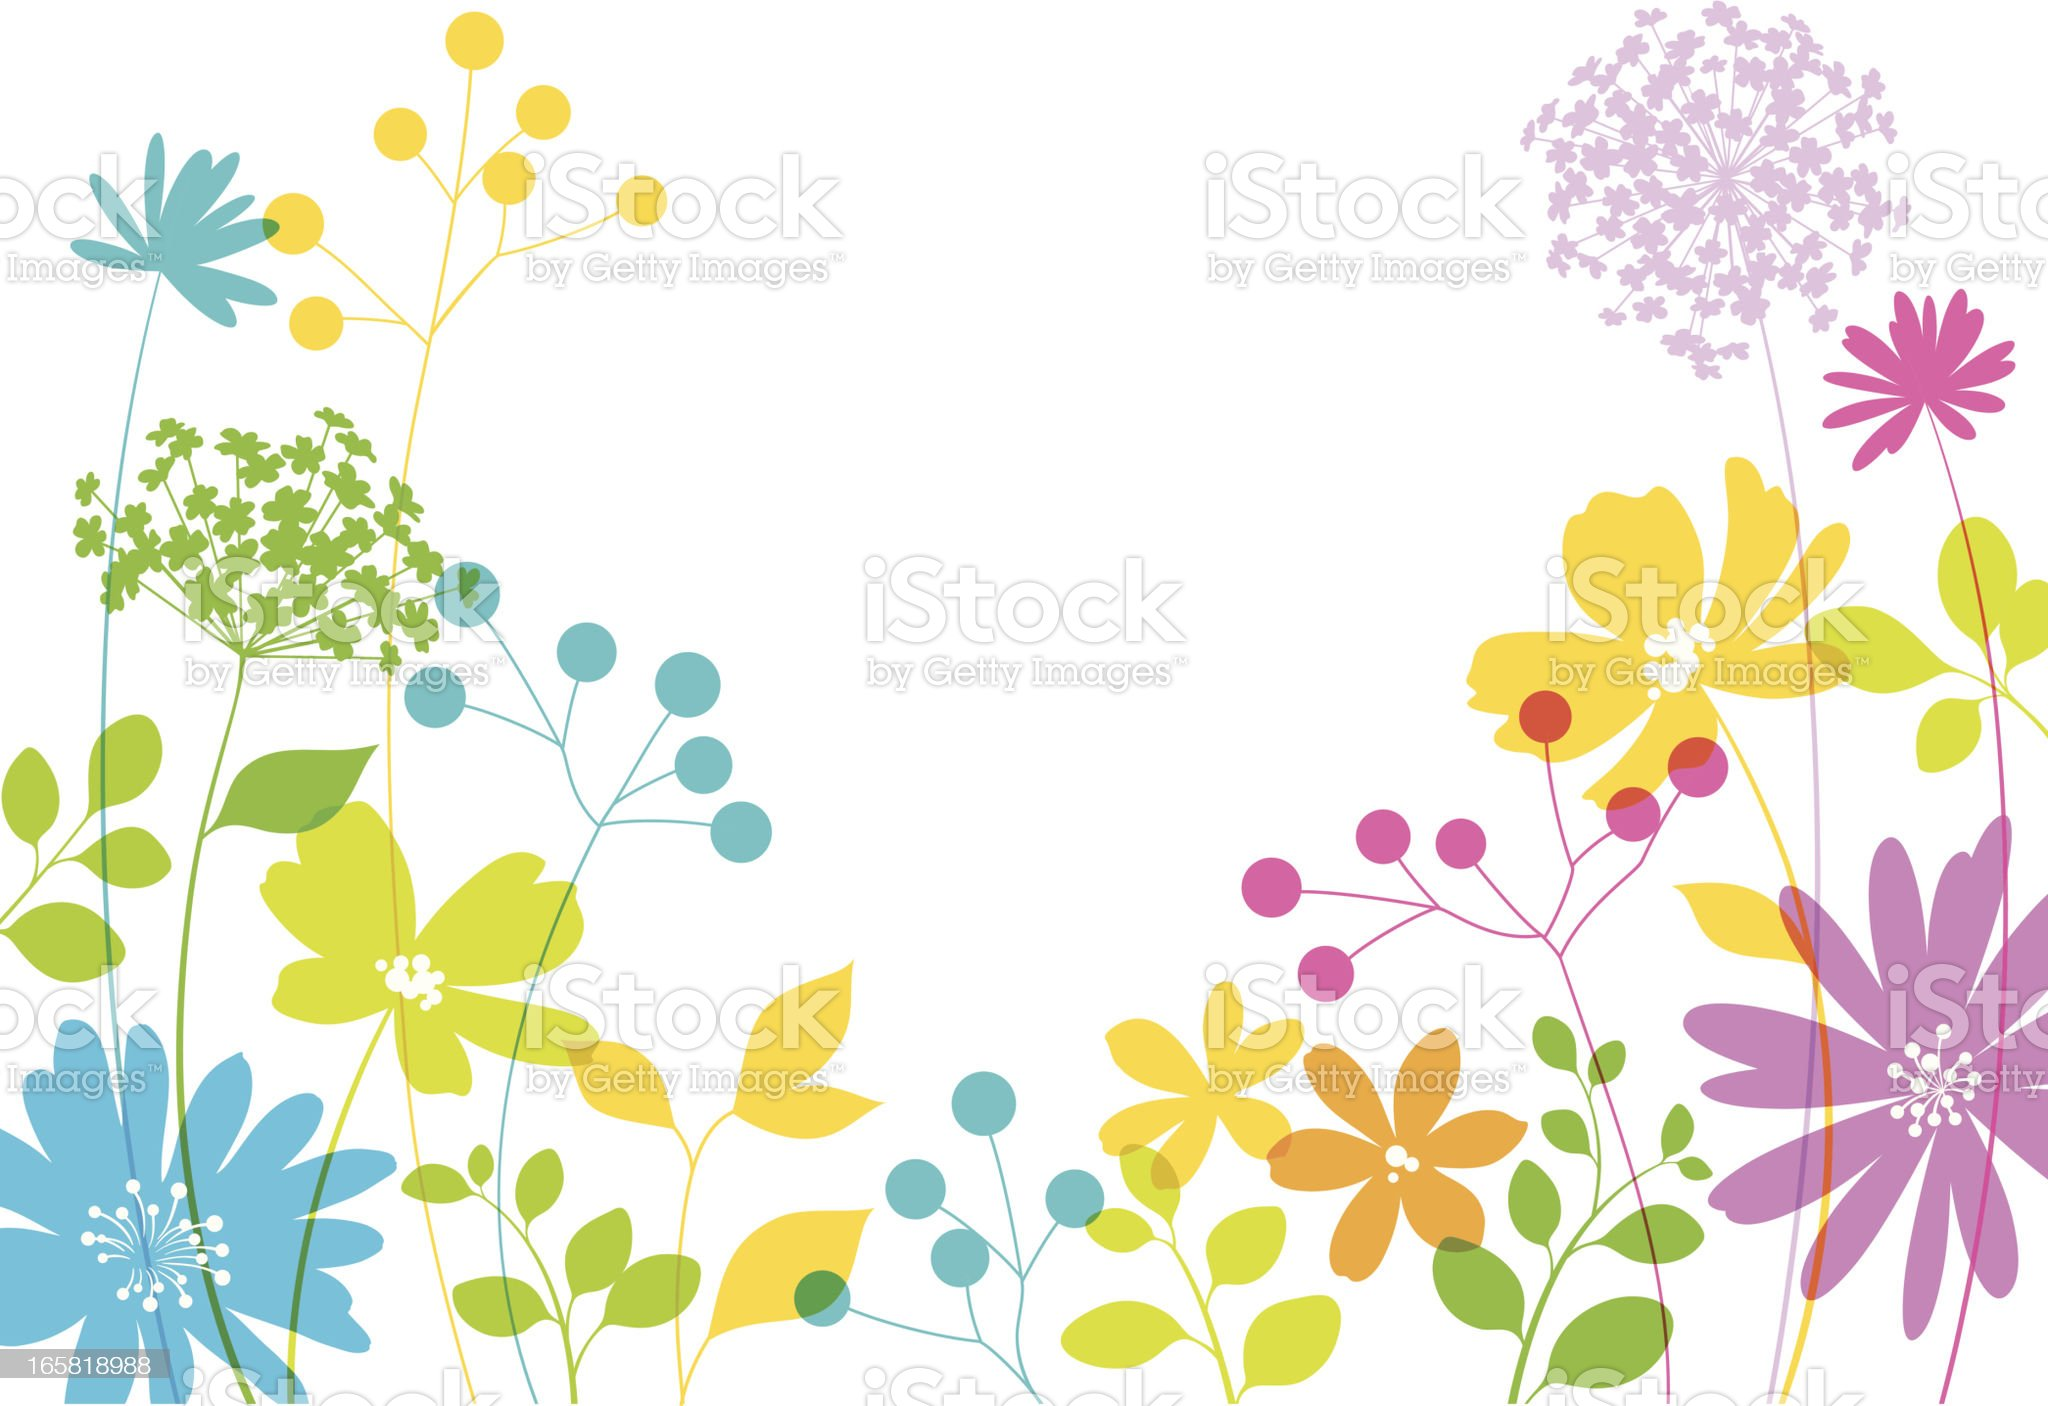 Spring Floral Design royalty-free stock vector art